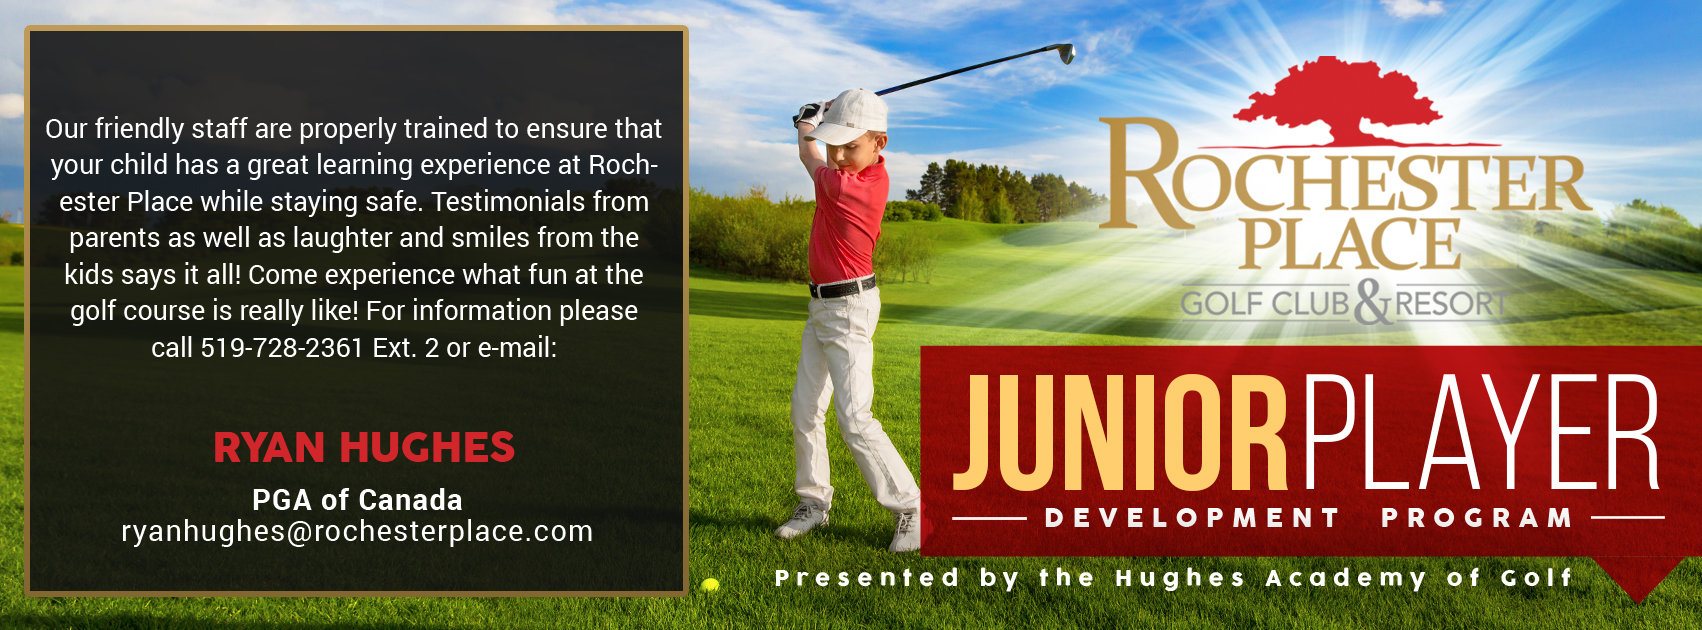 Junior Player Development Program, presented by the Hughes Academy of Golf. Our friendly staff are properly trained to ensure that your child has a great learning experience at Rochester Place while staying safe. Testimonials from parents as well as laughter and smiles from the kids says it all! Come experience what fun at the golf course is really like! For information please call 519-728-2361 Ext. 2 or email: Ryan Hughes, PGA of Canada, ryanhughes@rochesterplace.com | Danny Palace, PGA of Canada, danny@rochesterplace.com